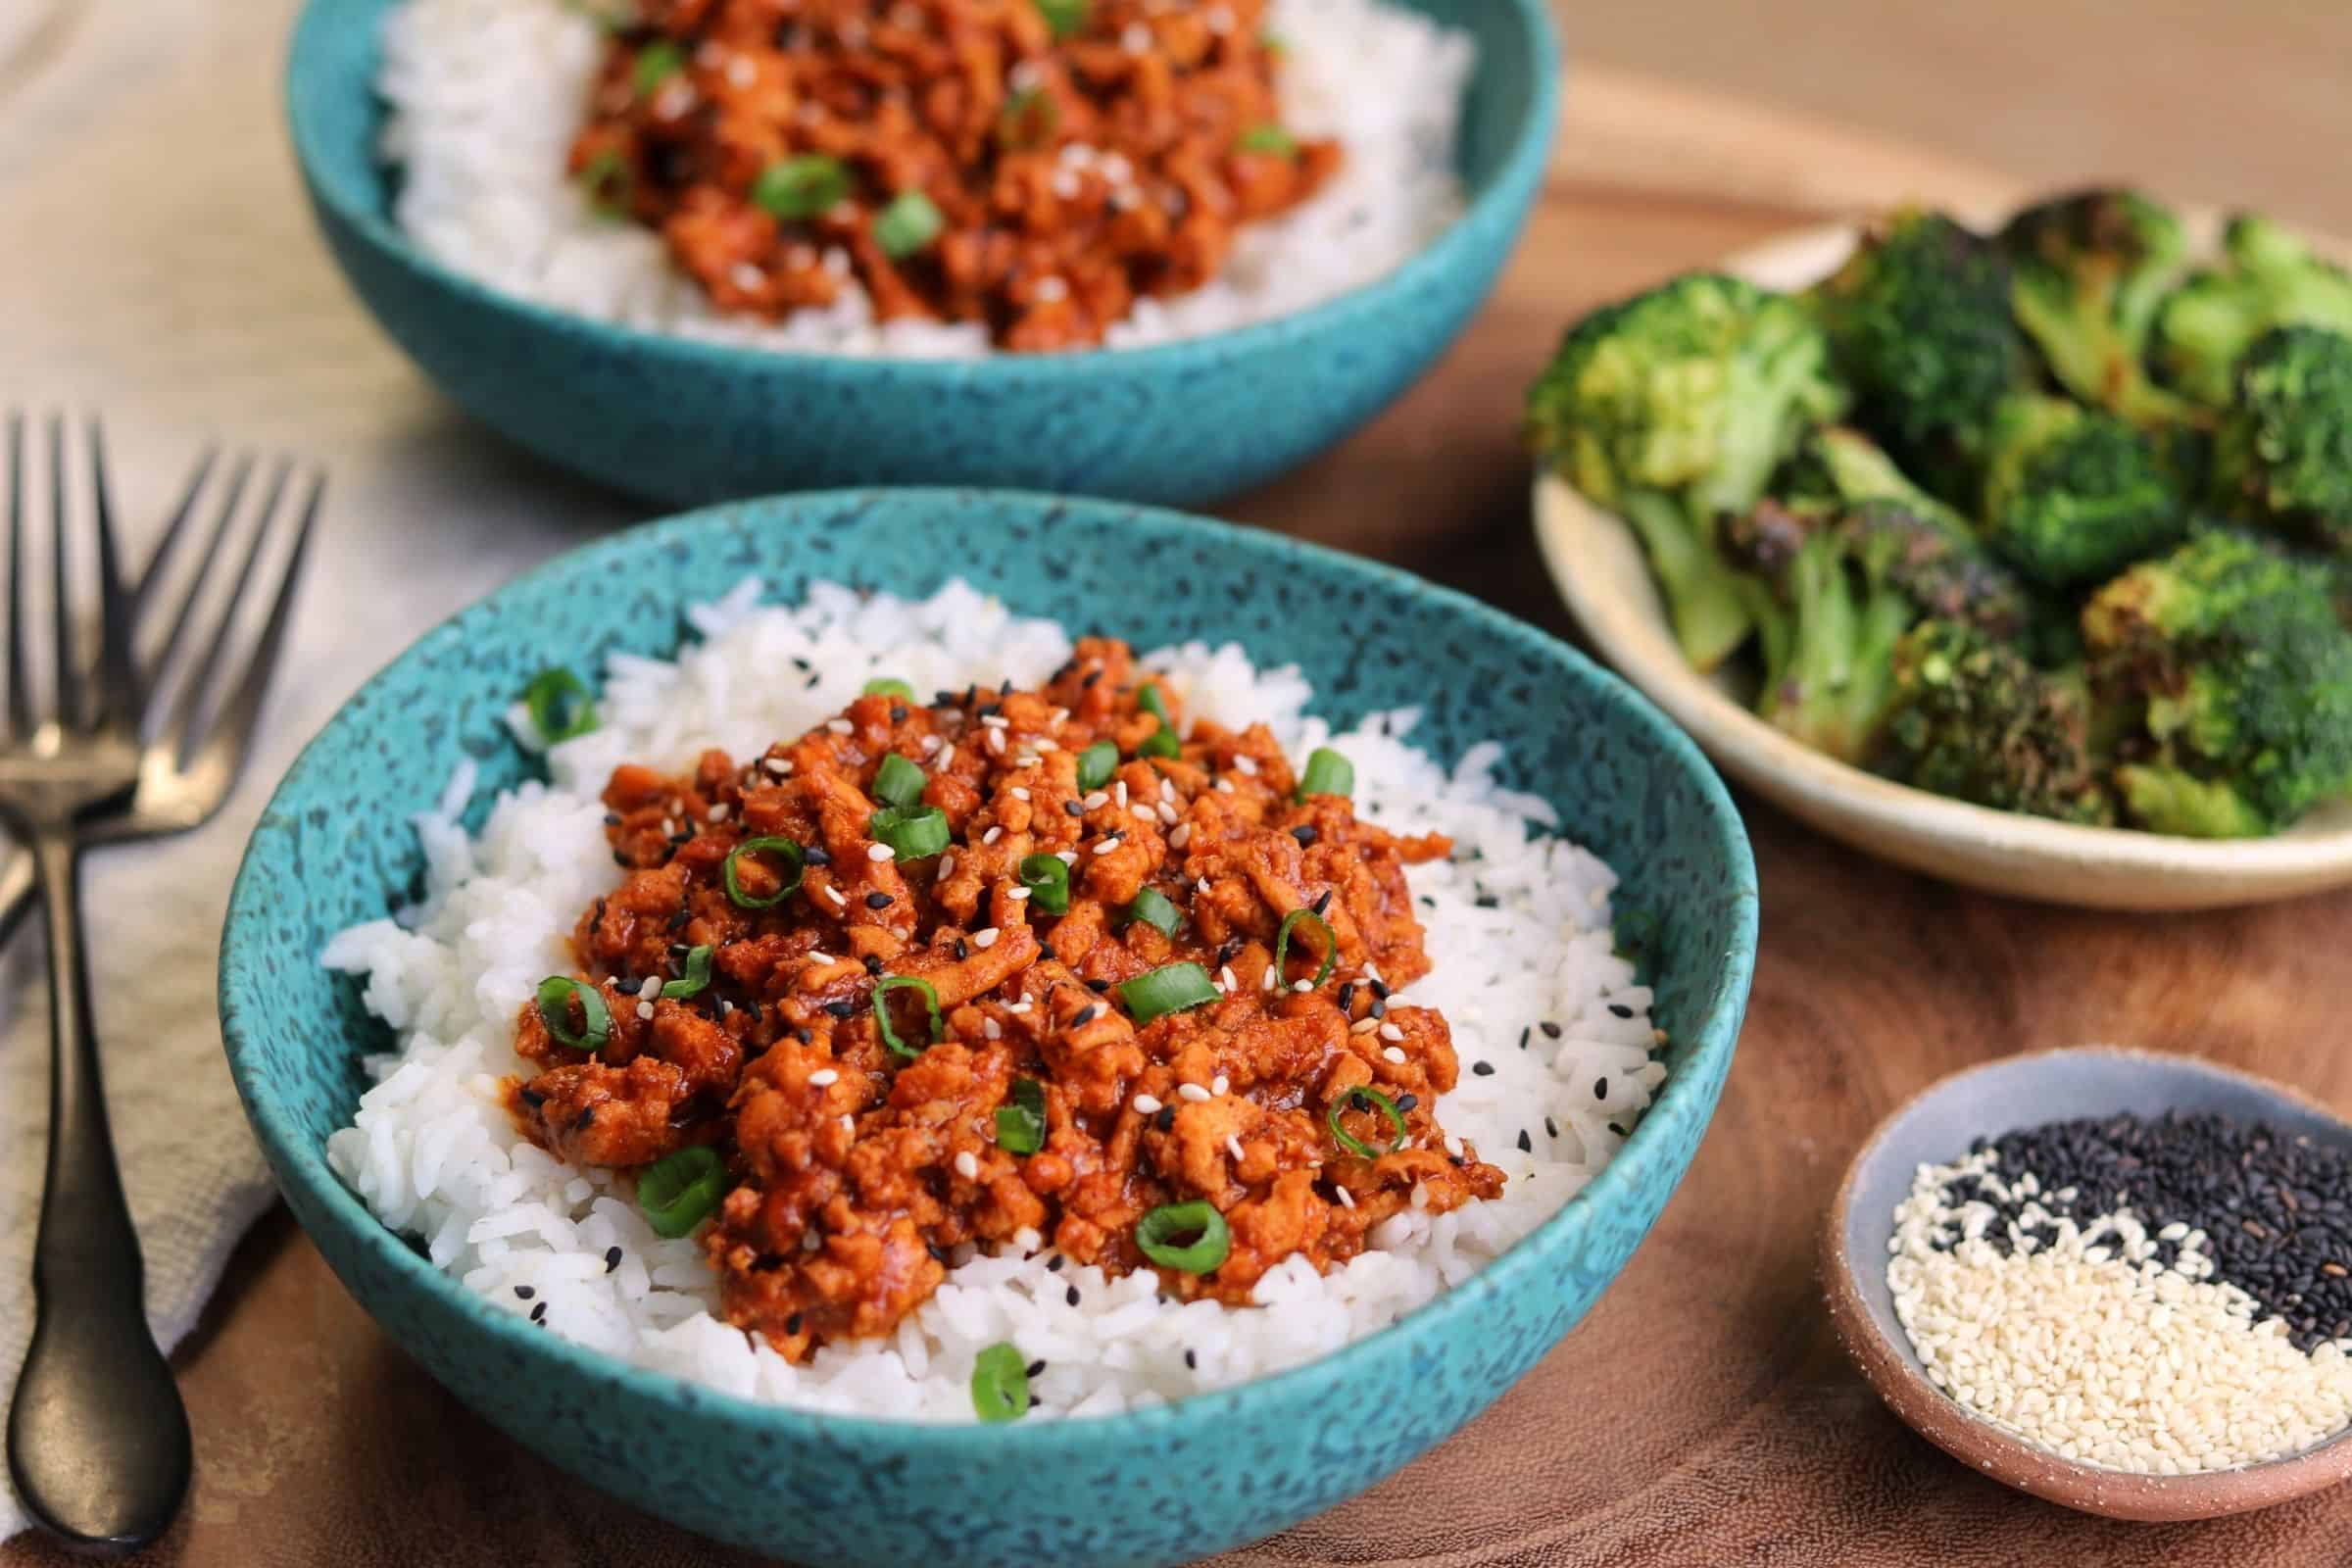 chili coconut ground chicken over rice in a bowl beside air fried broccoli and sesame seeds